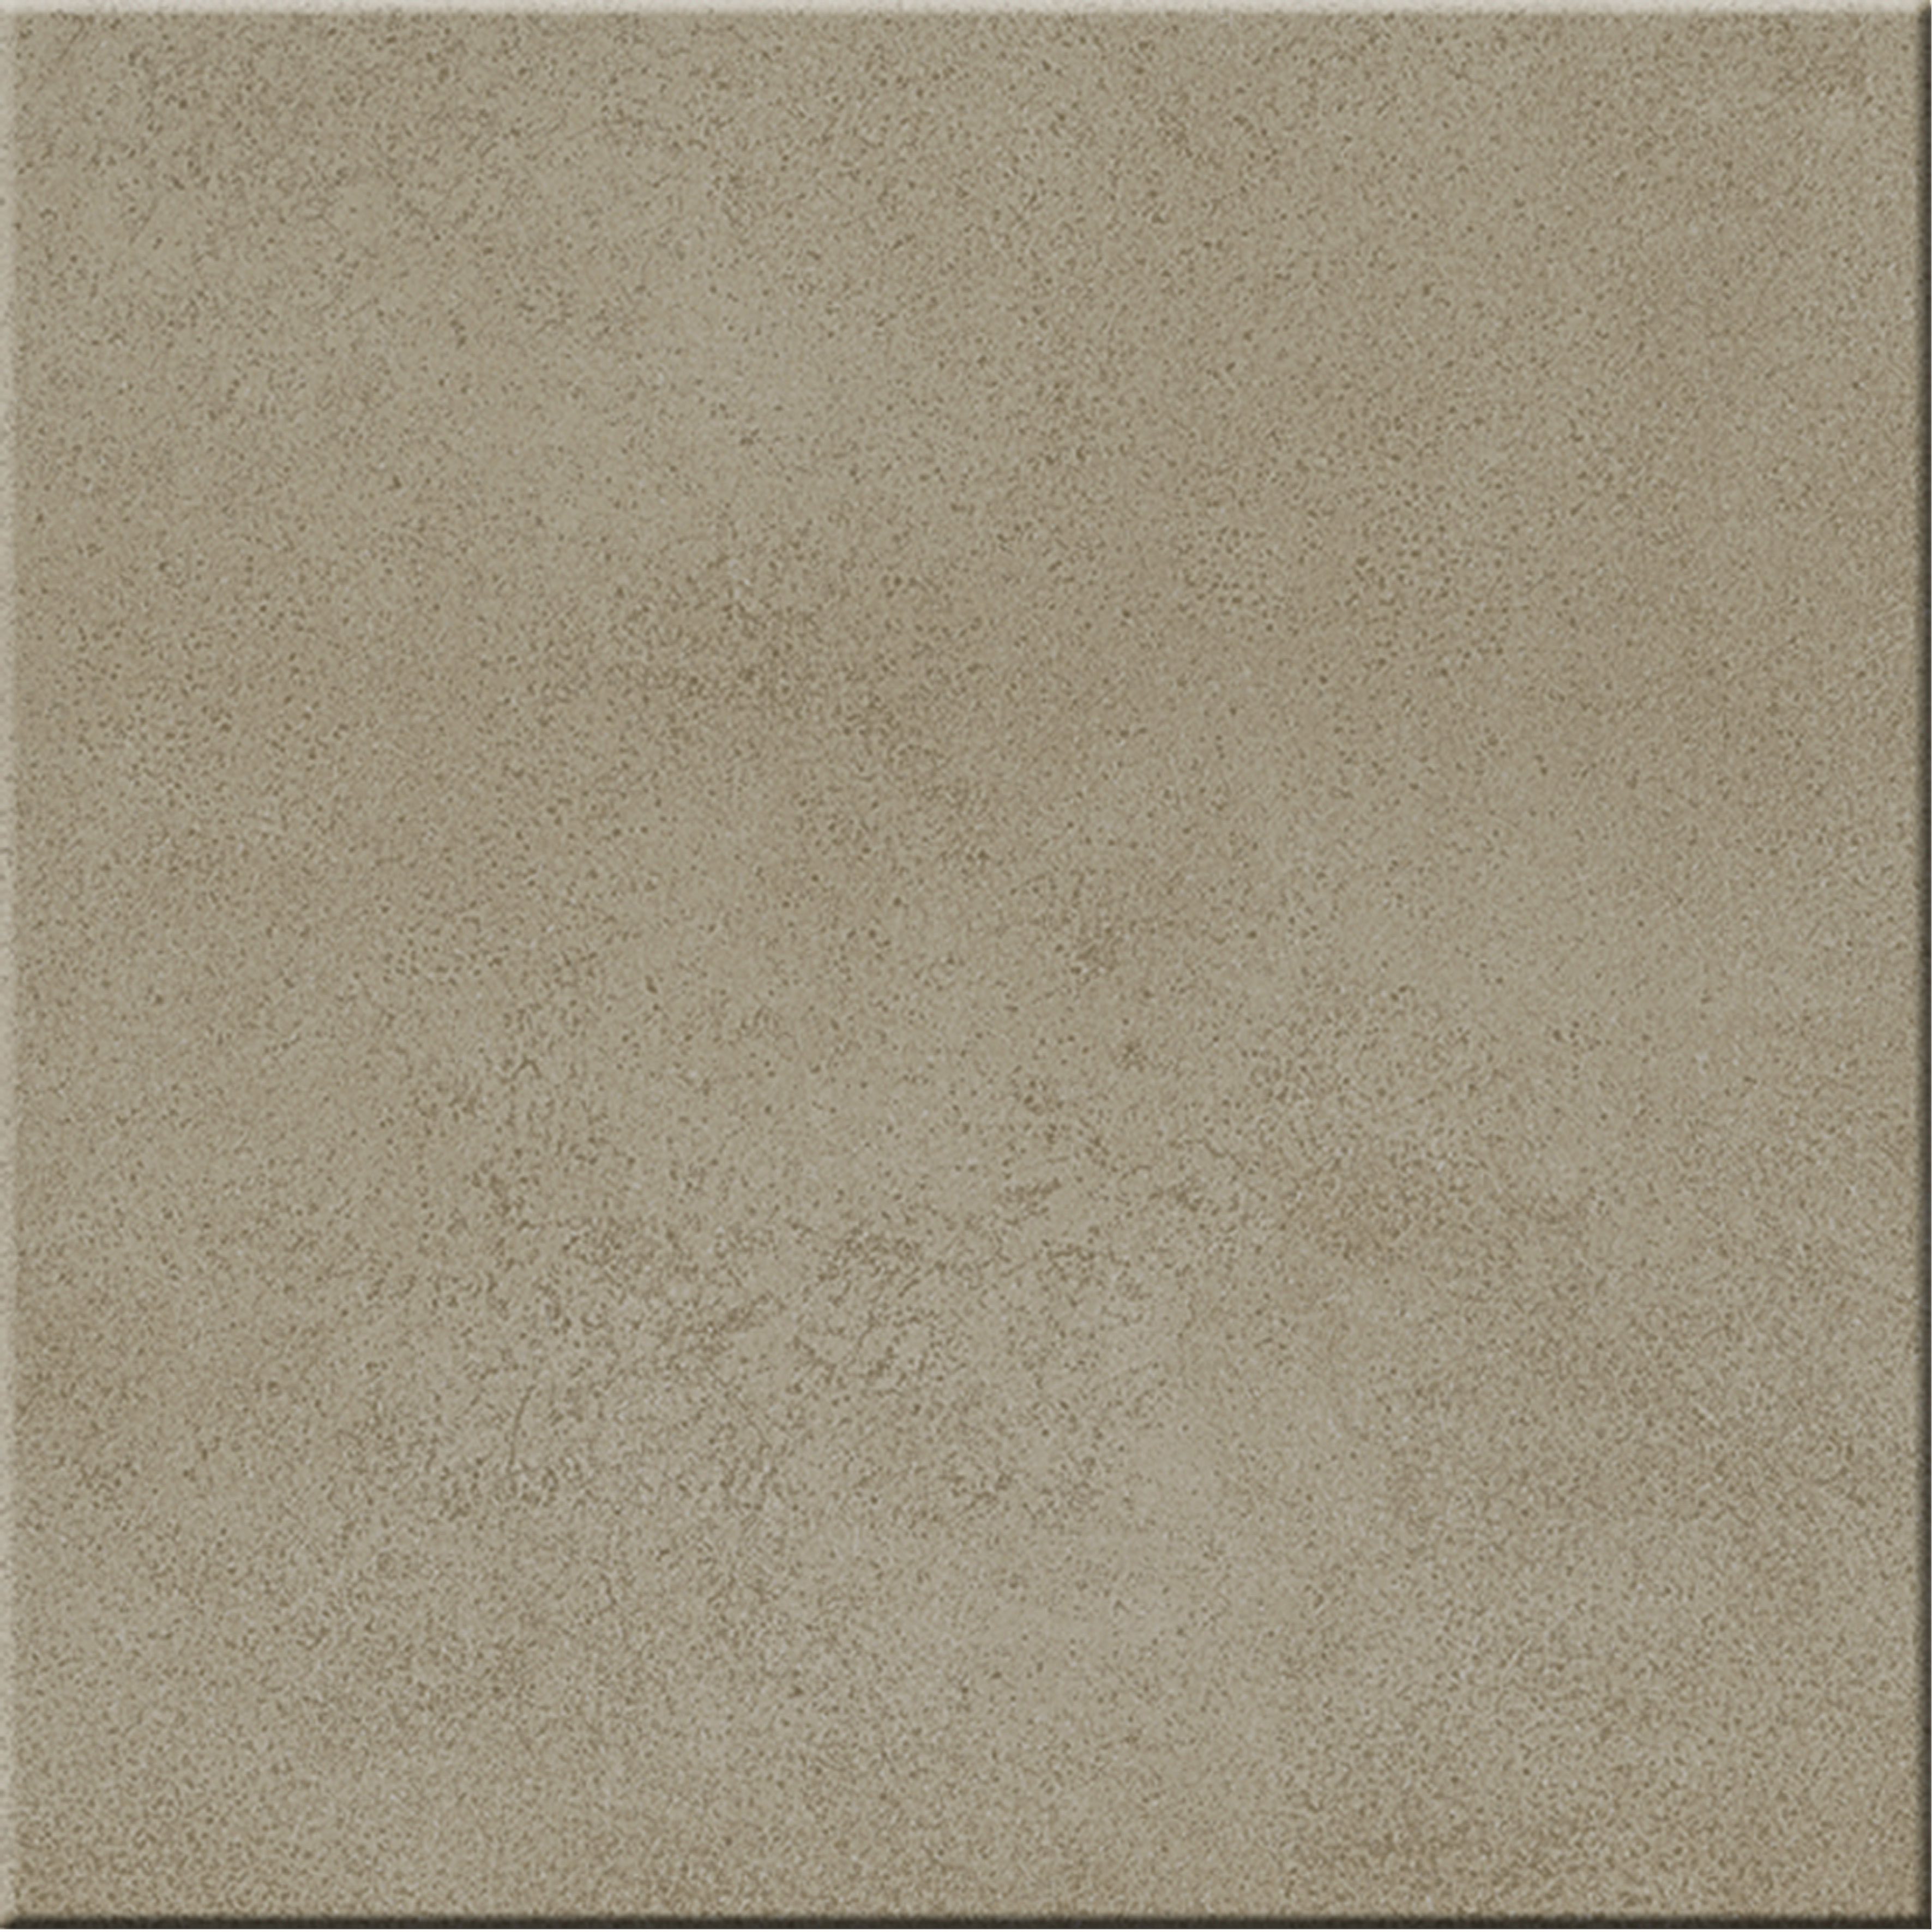 Select Taupe Ceramic Tile Supplies